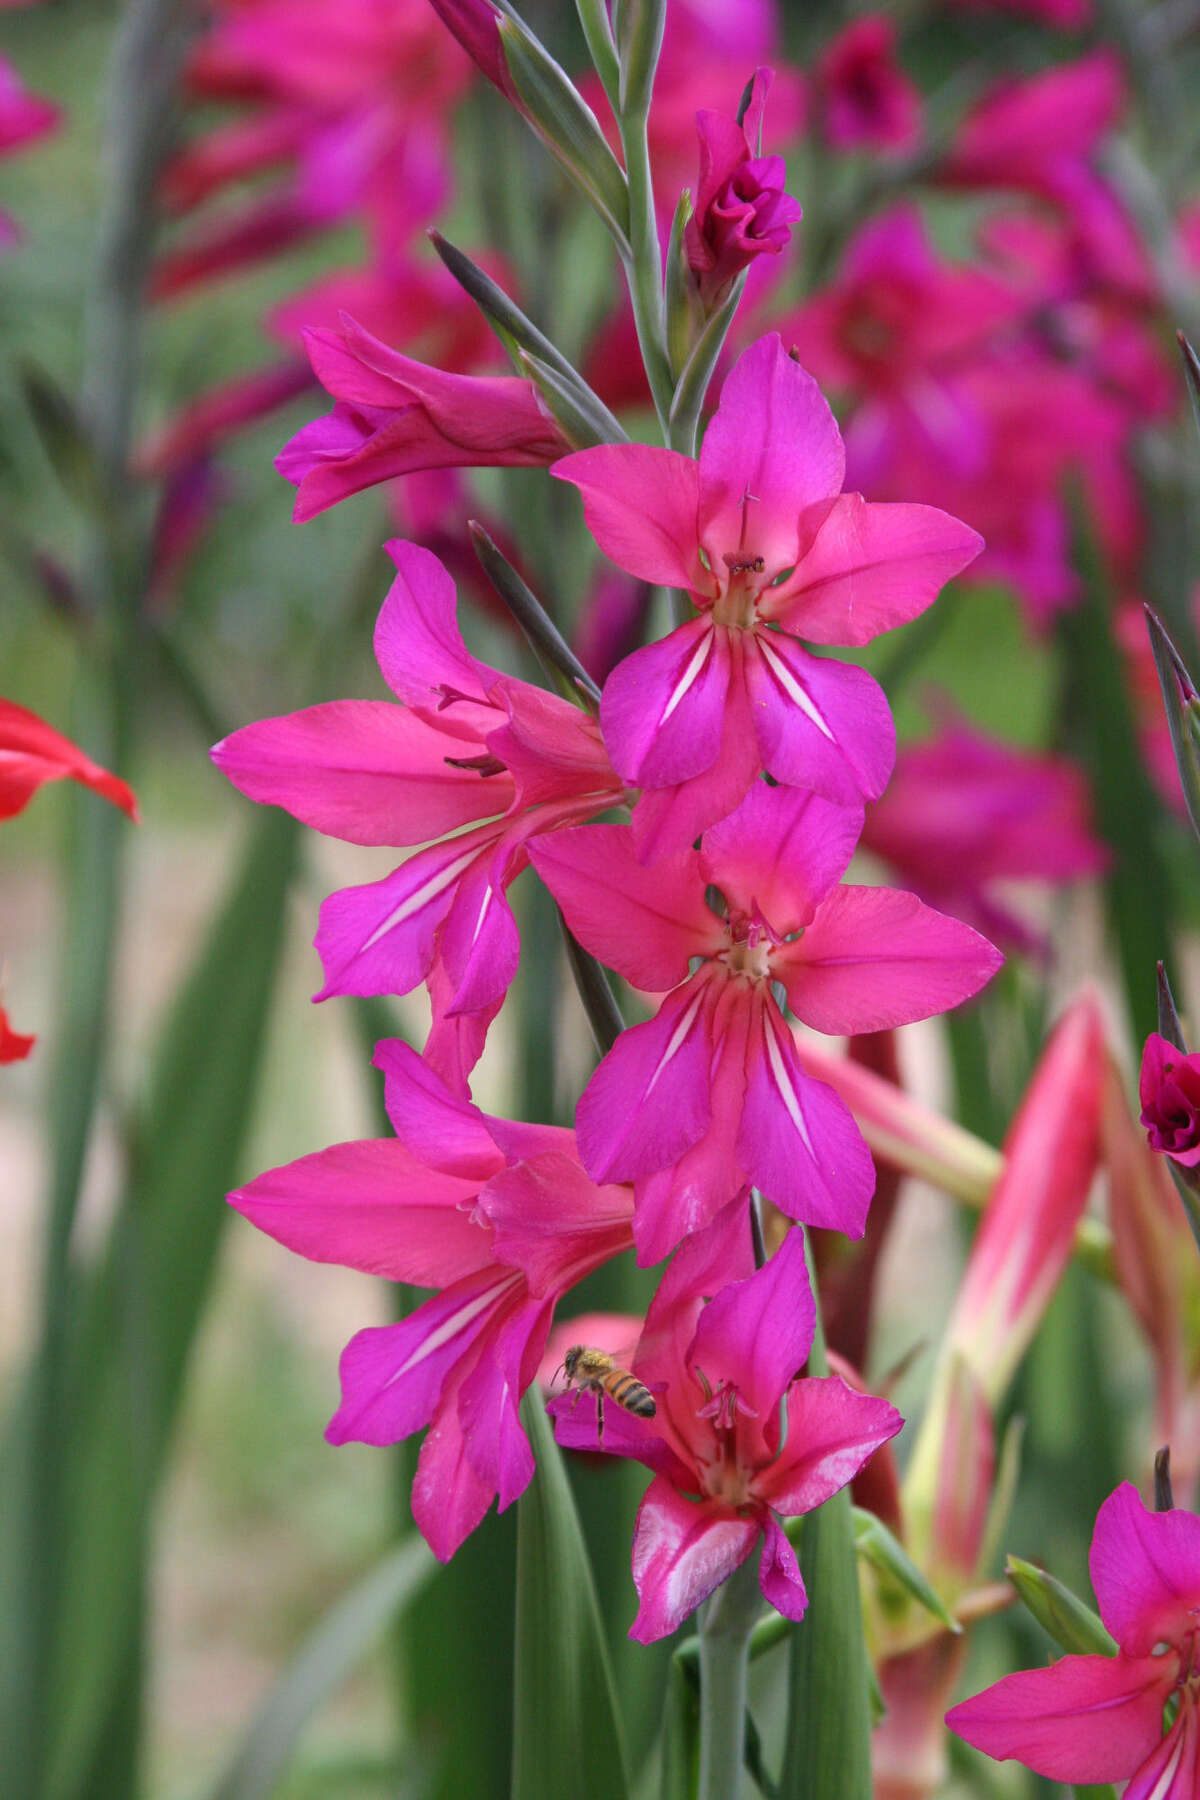 Byzantine gladiola will multiply rapidly in the landscape.